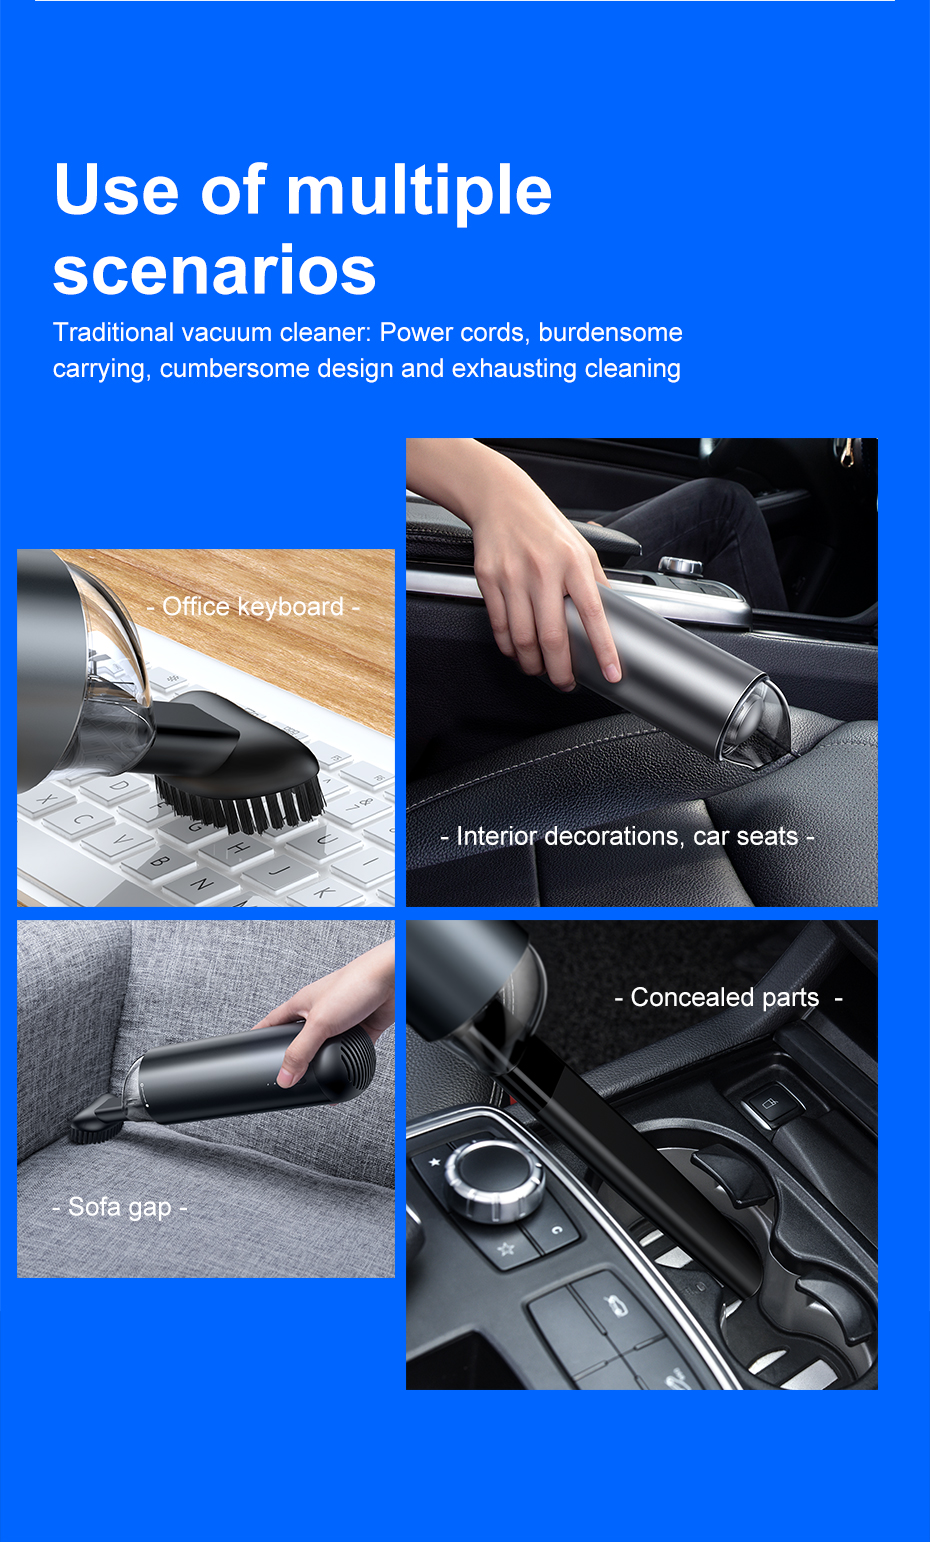 The best car cleaning solution - cordless vacuum cleaner